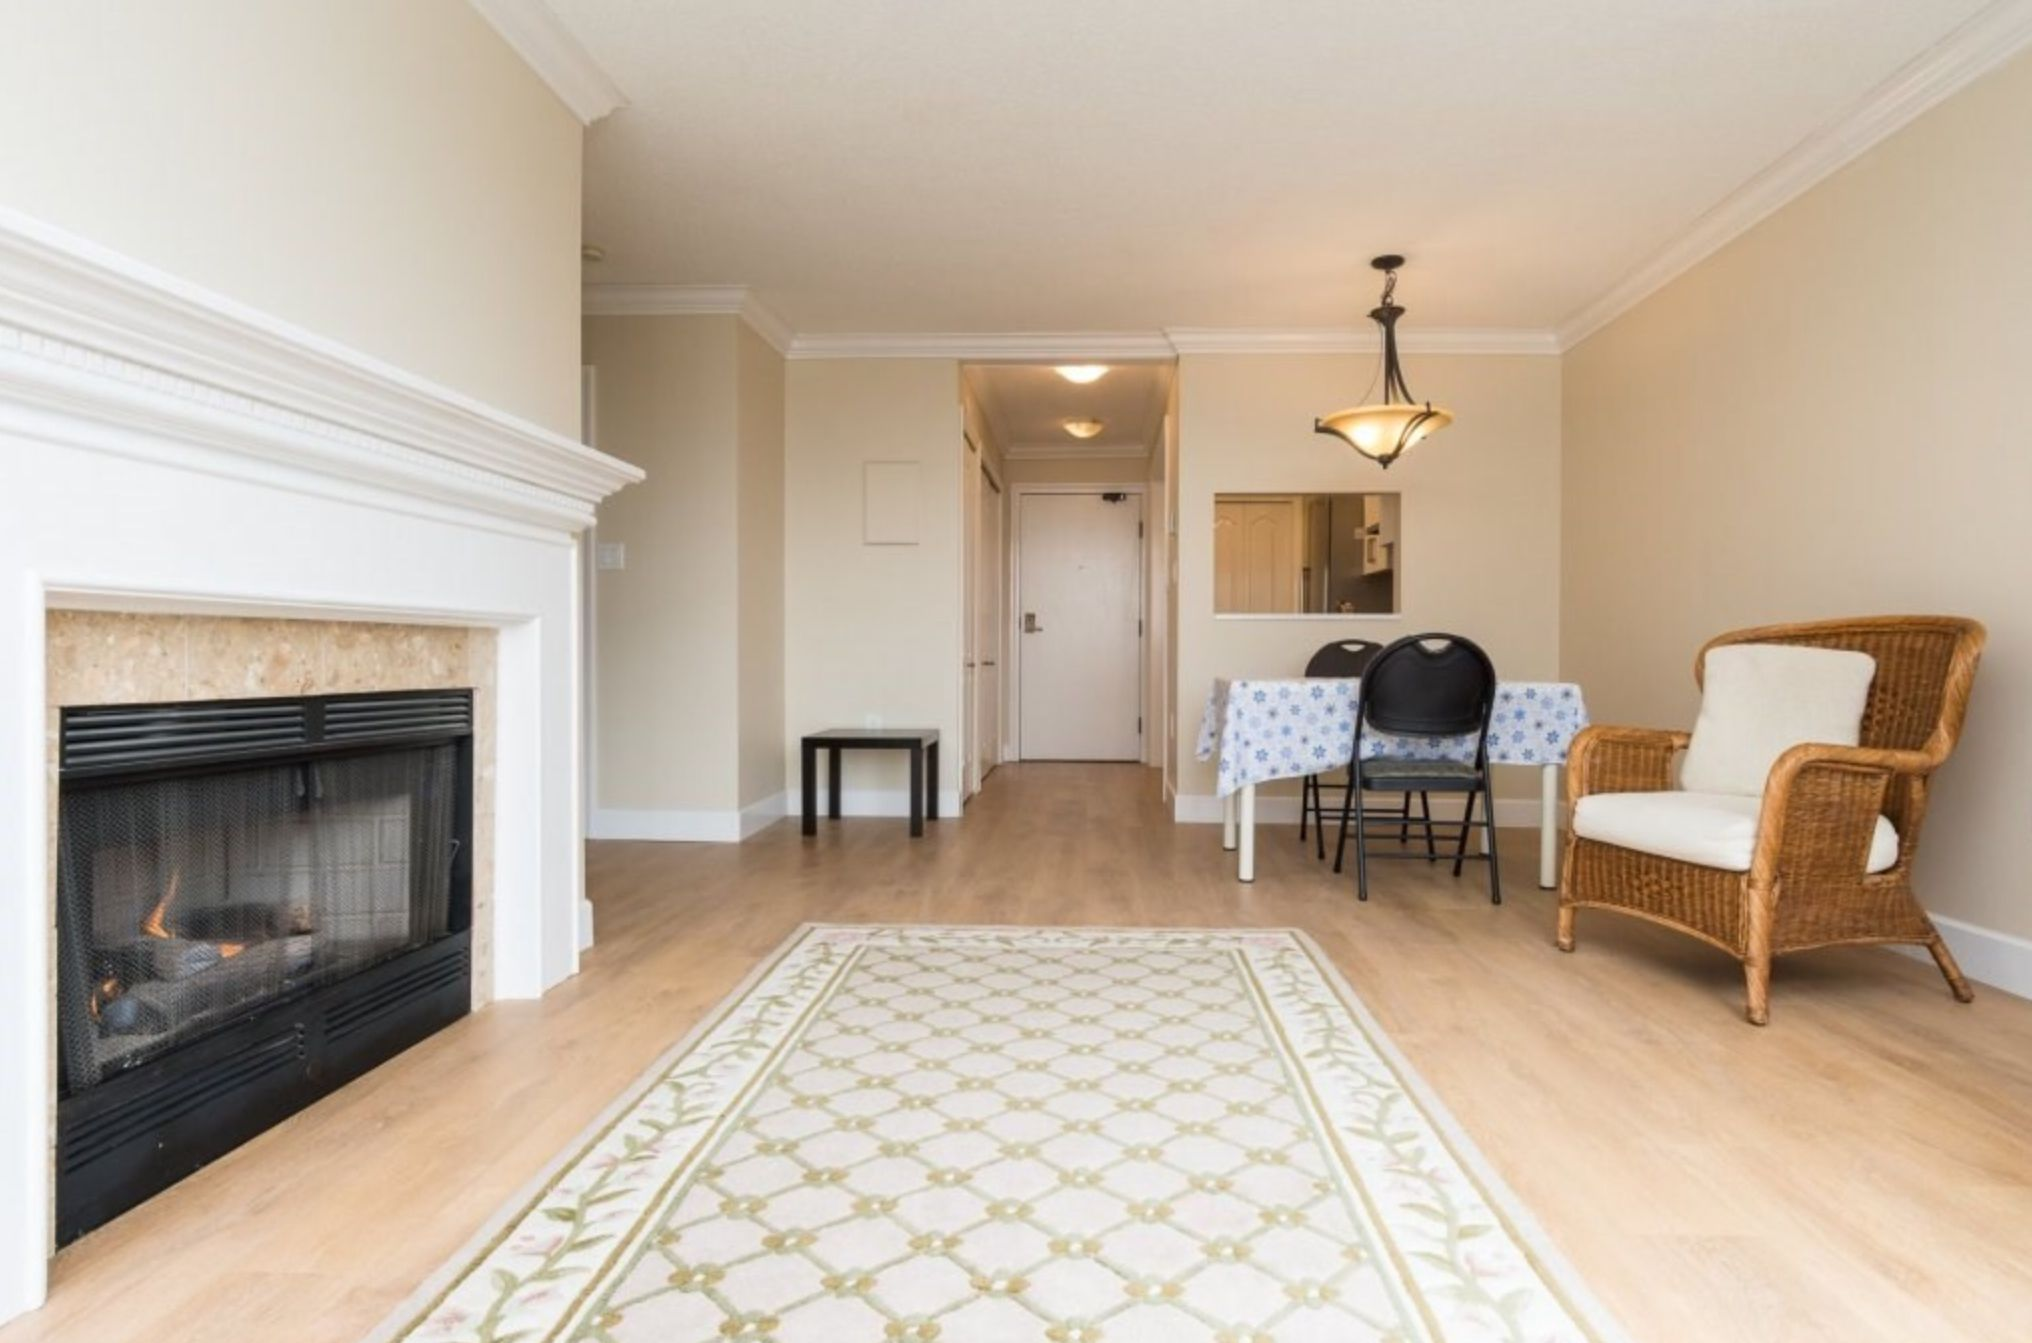 Photo 8: Photos: 410, 15111 Russell Avenue: White Rock Condo for sale (South Surrey White Rock)  : MLS®# R2152299